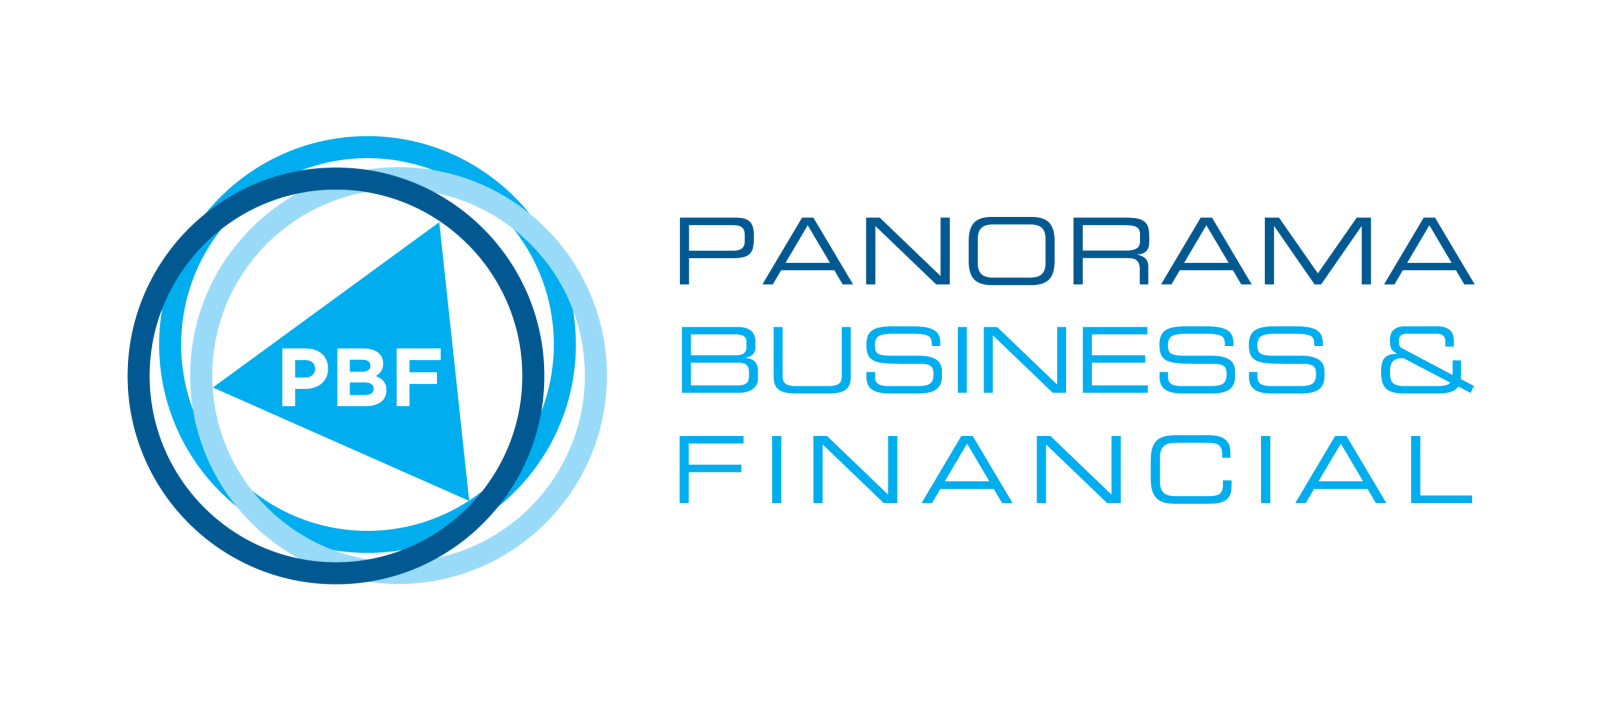 Panorama Business & Financial